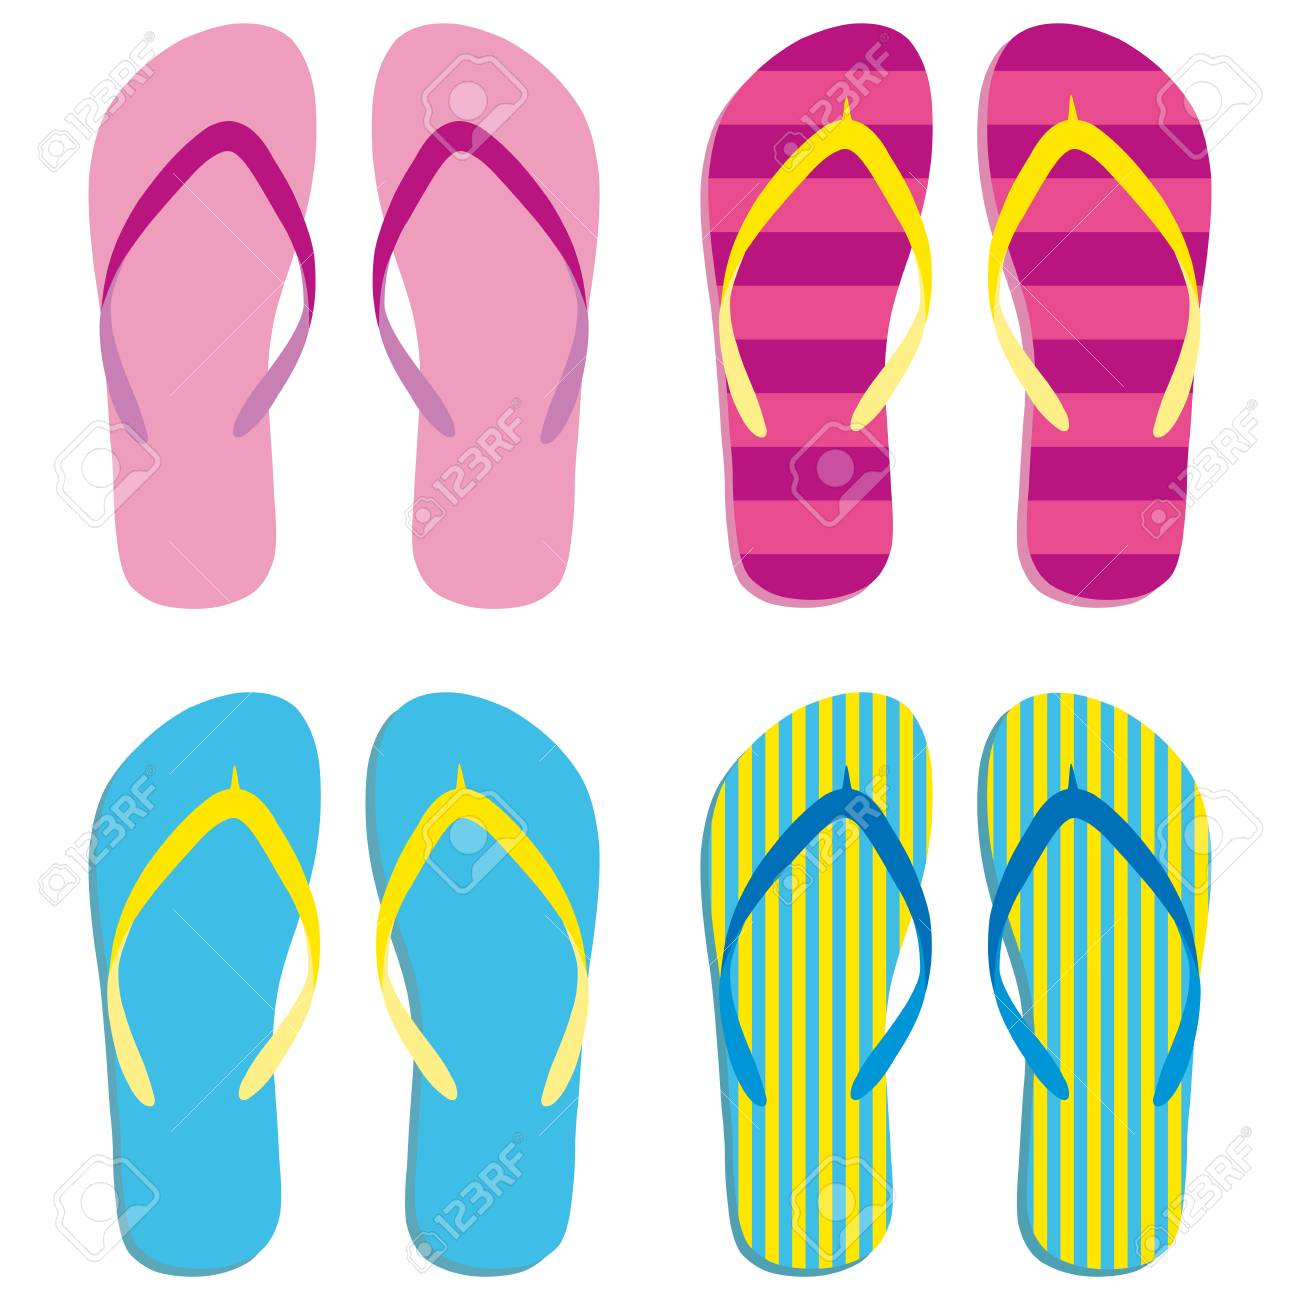 a7d6f929dc235 ... white background. Vector illustration. Colored flipflops set icon.  Slippers icon. Isolated blue